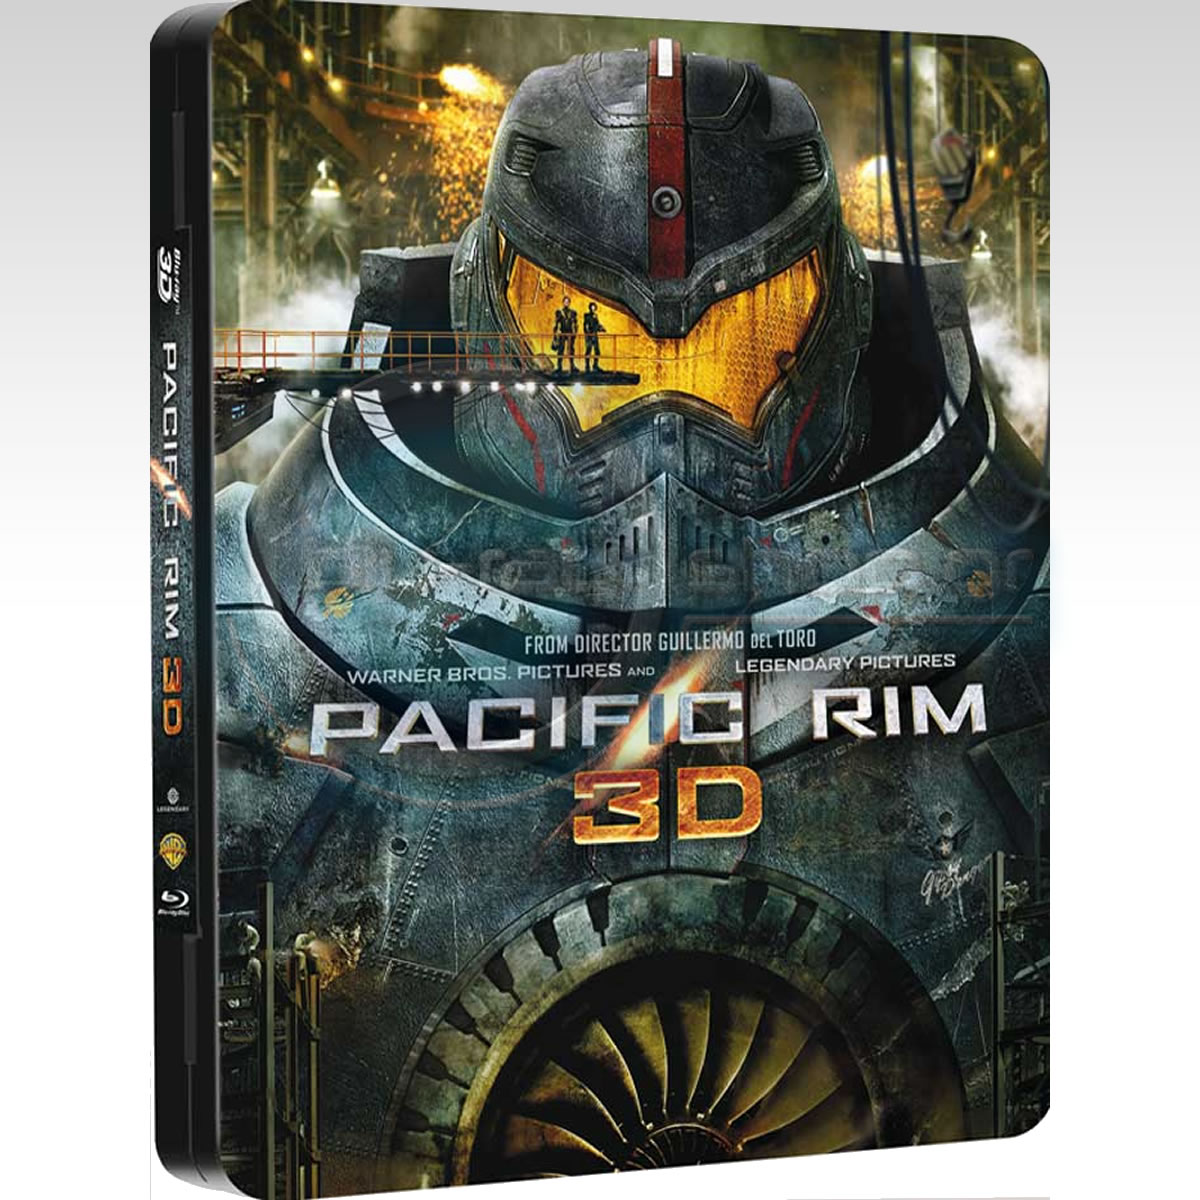 PACIFIC RIM 3D - Limited Collector's Edition FuturePak (BLU-RAY 3D/2D)